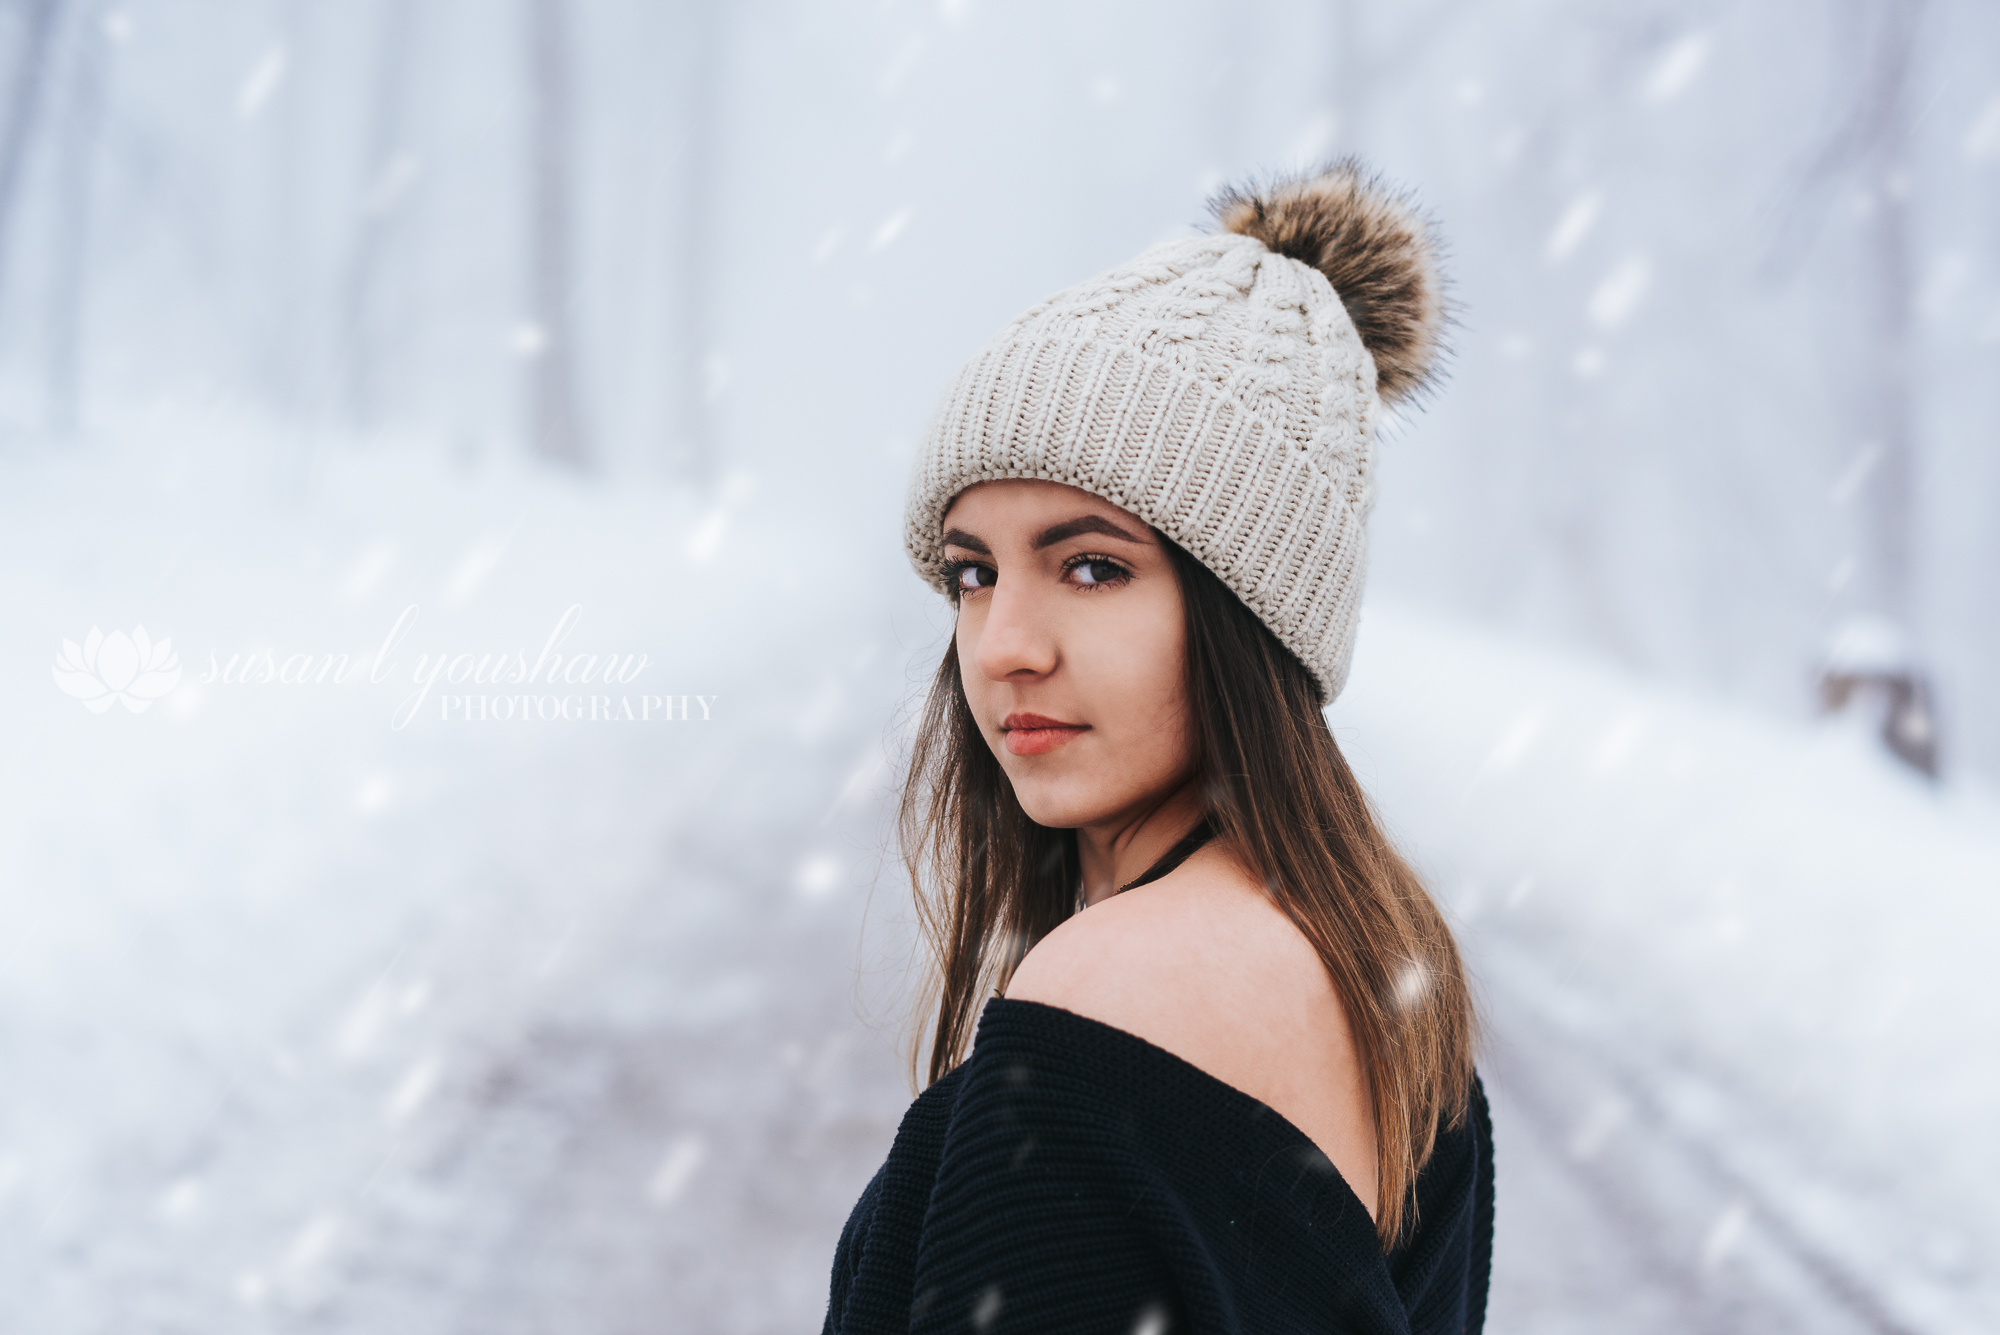 Senior Photos Kenzie 02-24-2019 SLY Photography-2.jpg